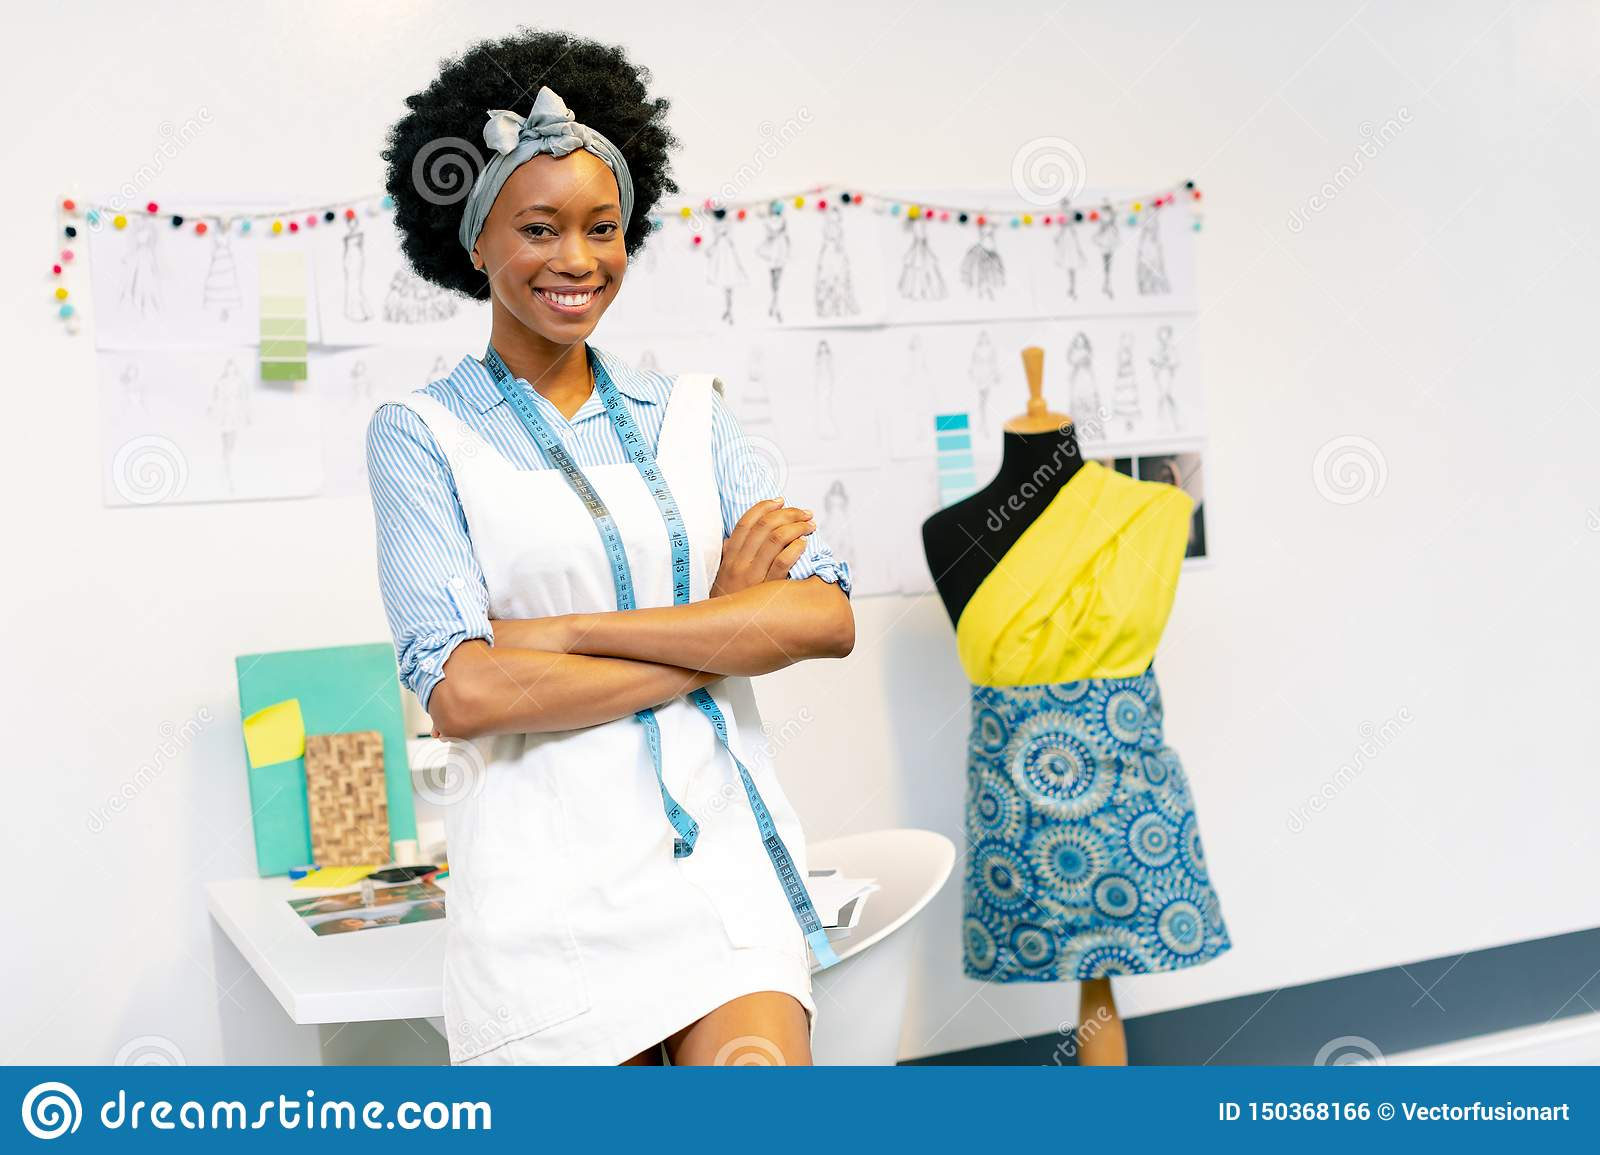 Female Fashion Designer With Arms Crossed Stock Photo Image Of Businesswoman Confident 150368166